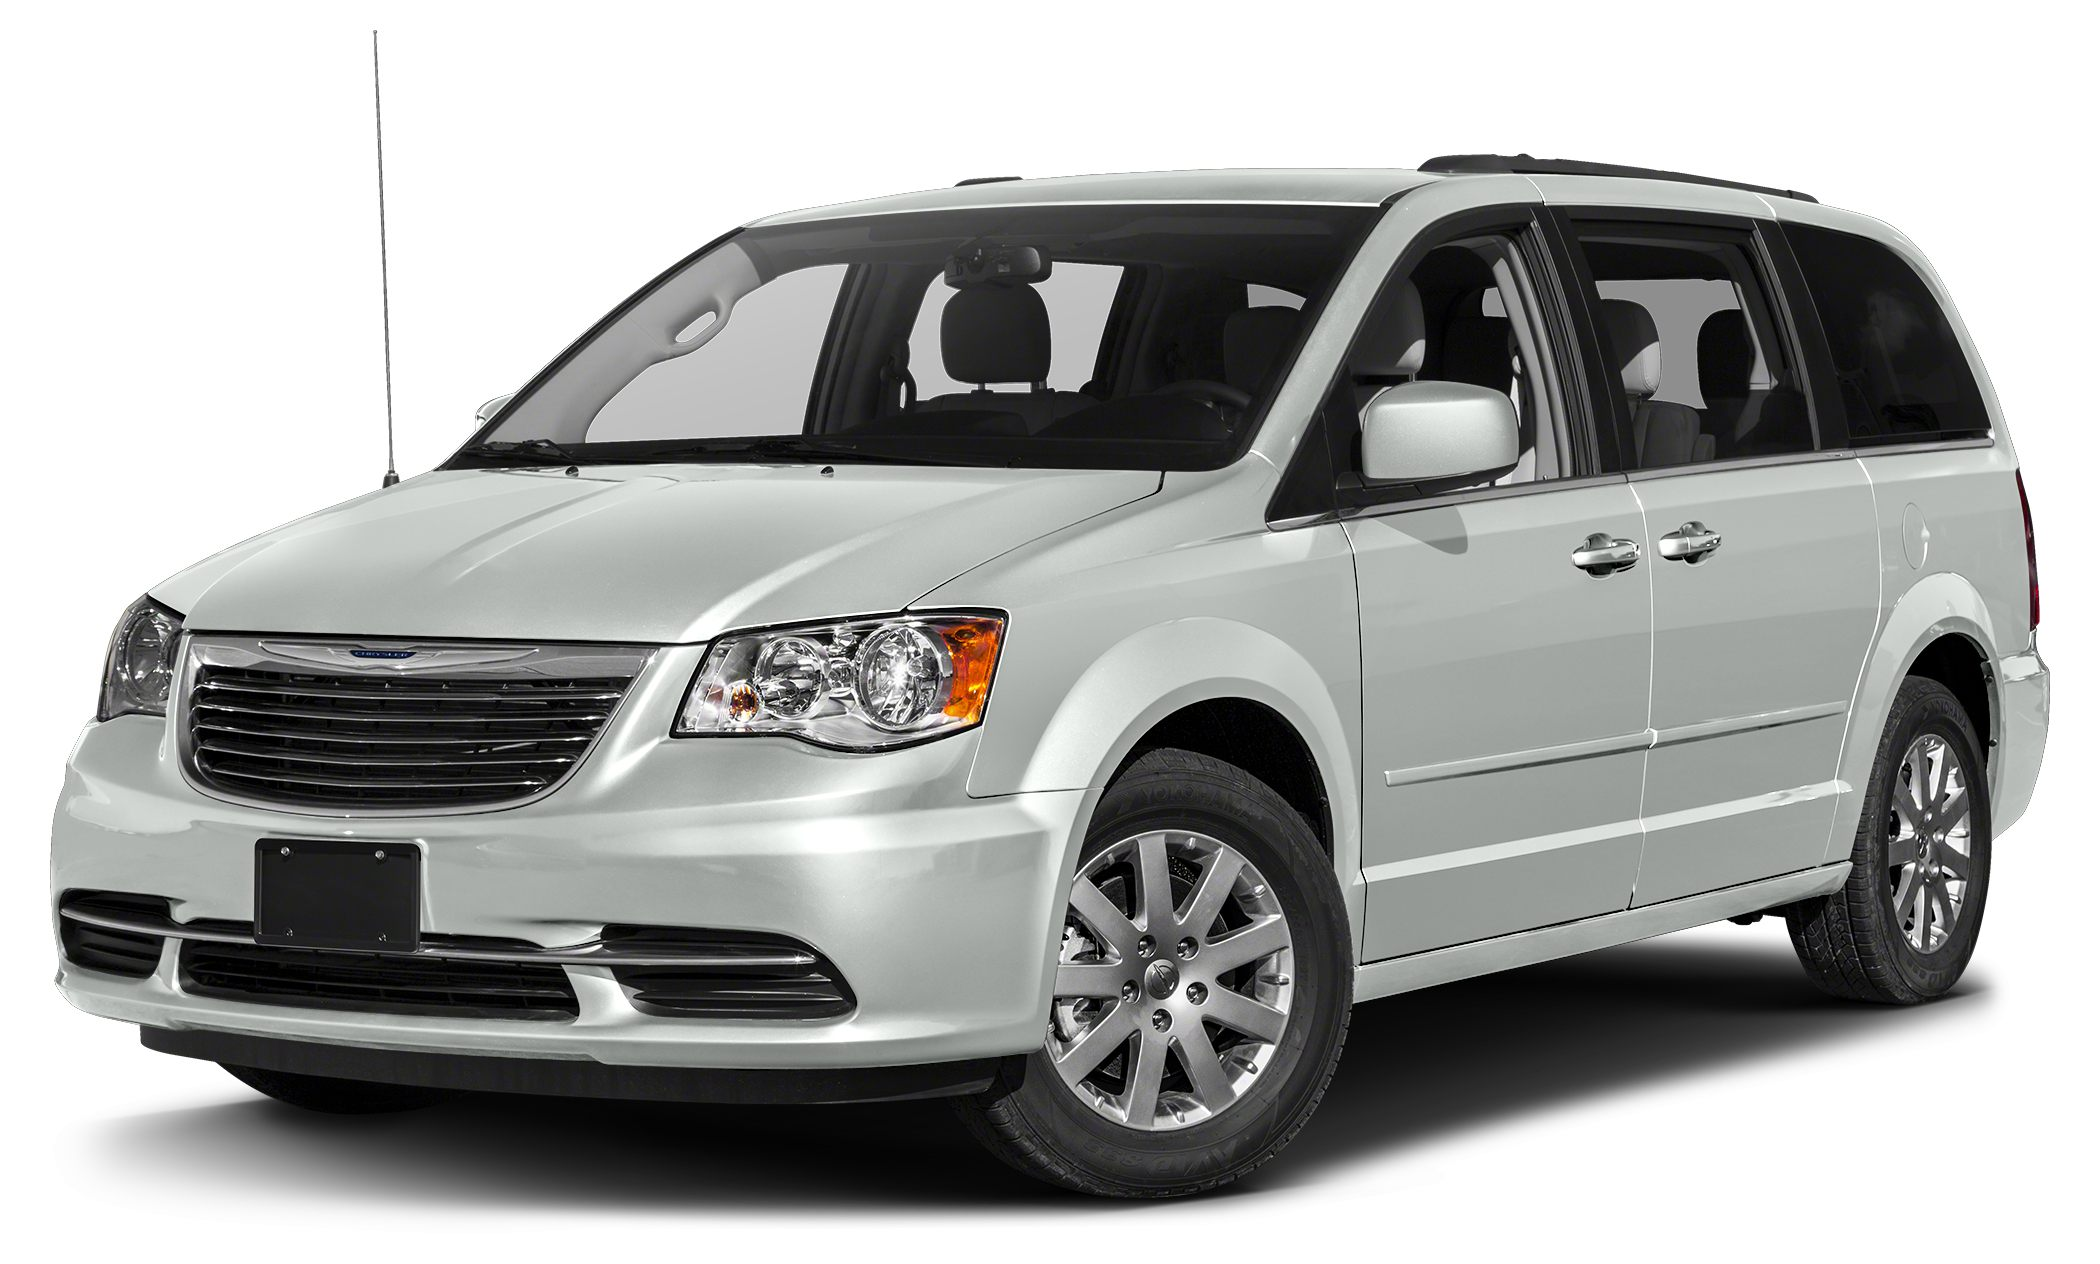 2015 Chrysler Town  Country Touring 2015 Chrysler Town  Country Touring in Bright White Clearcoa